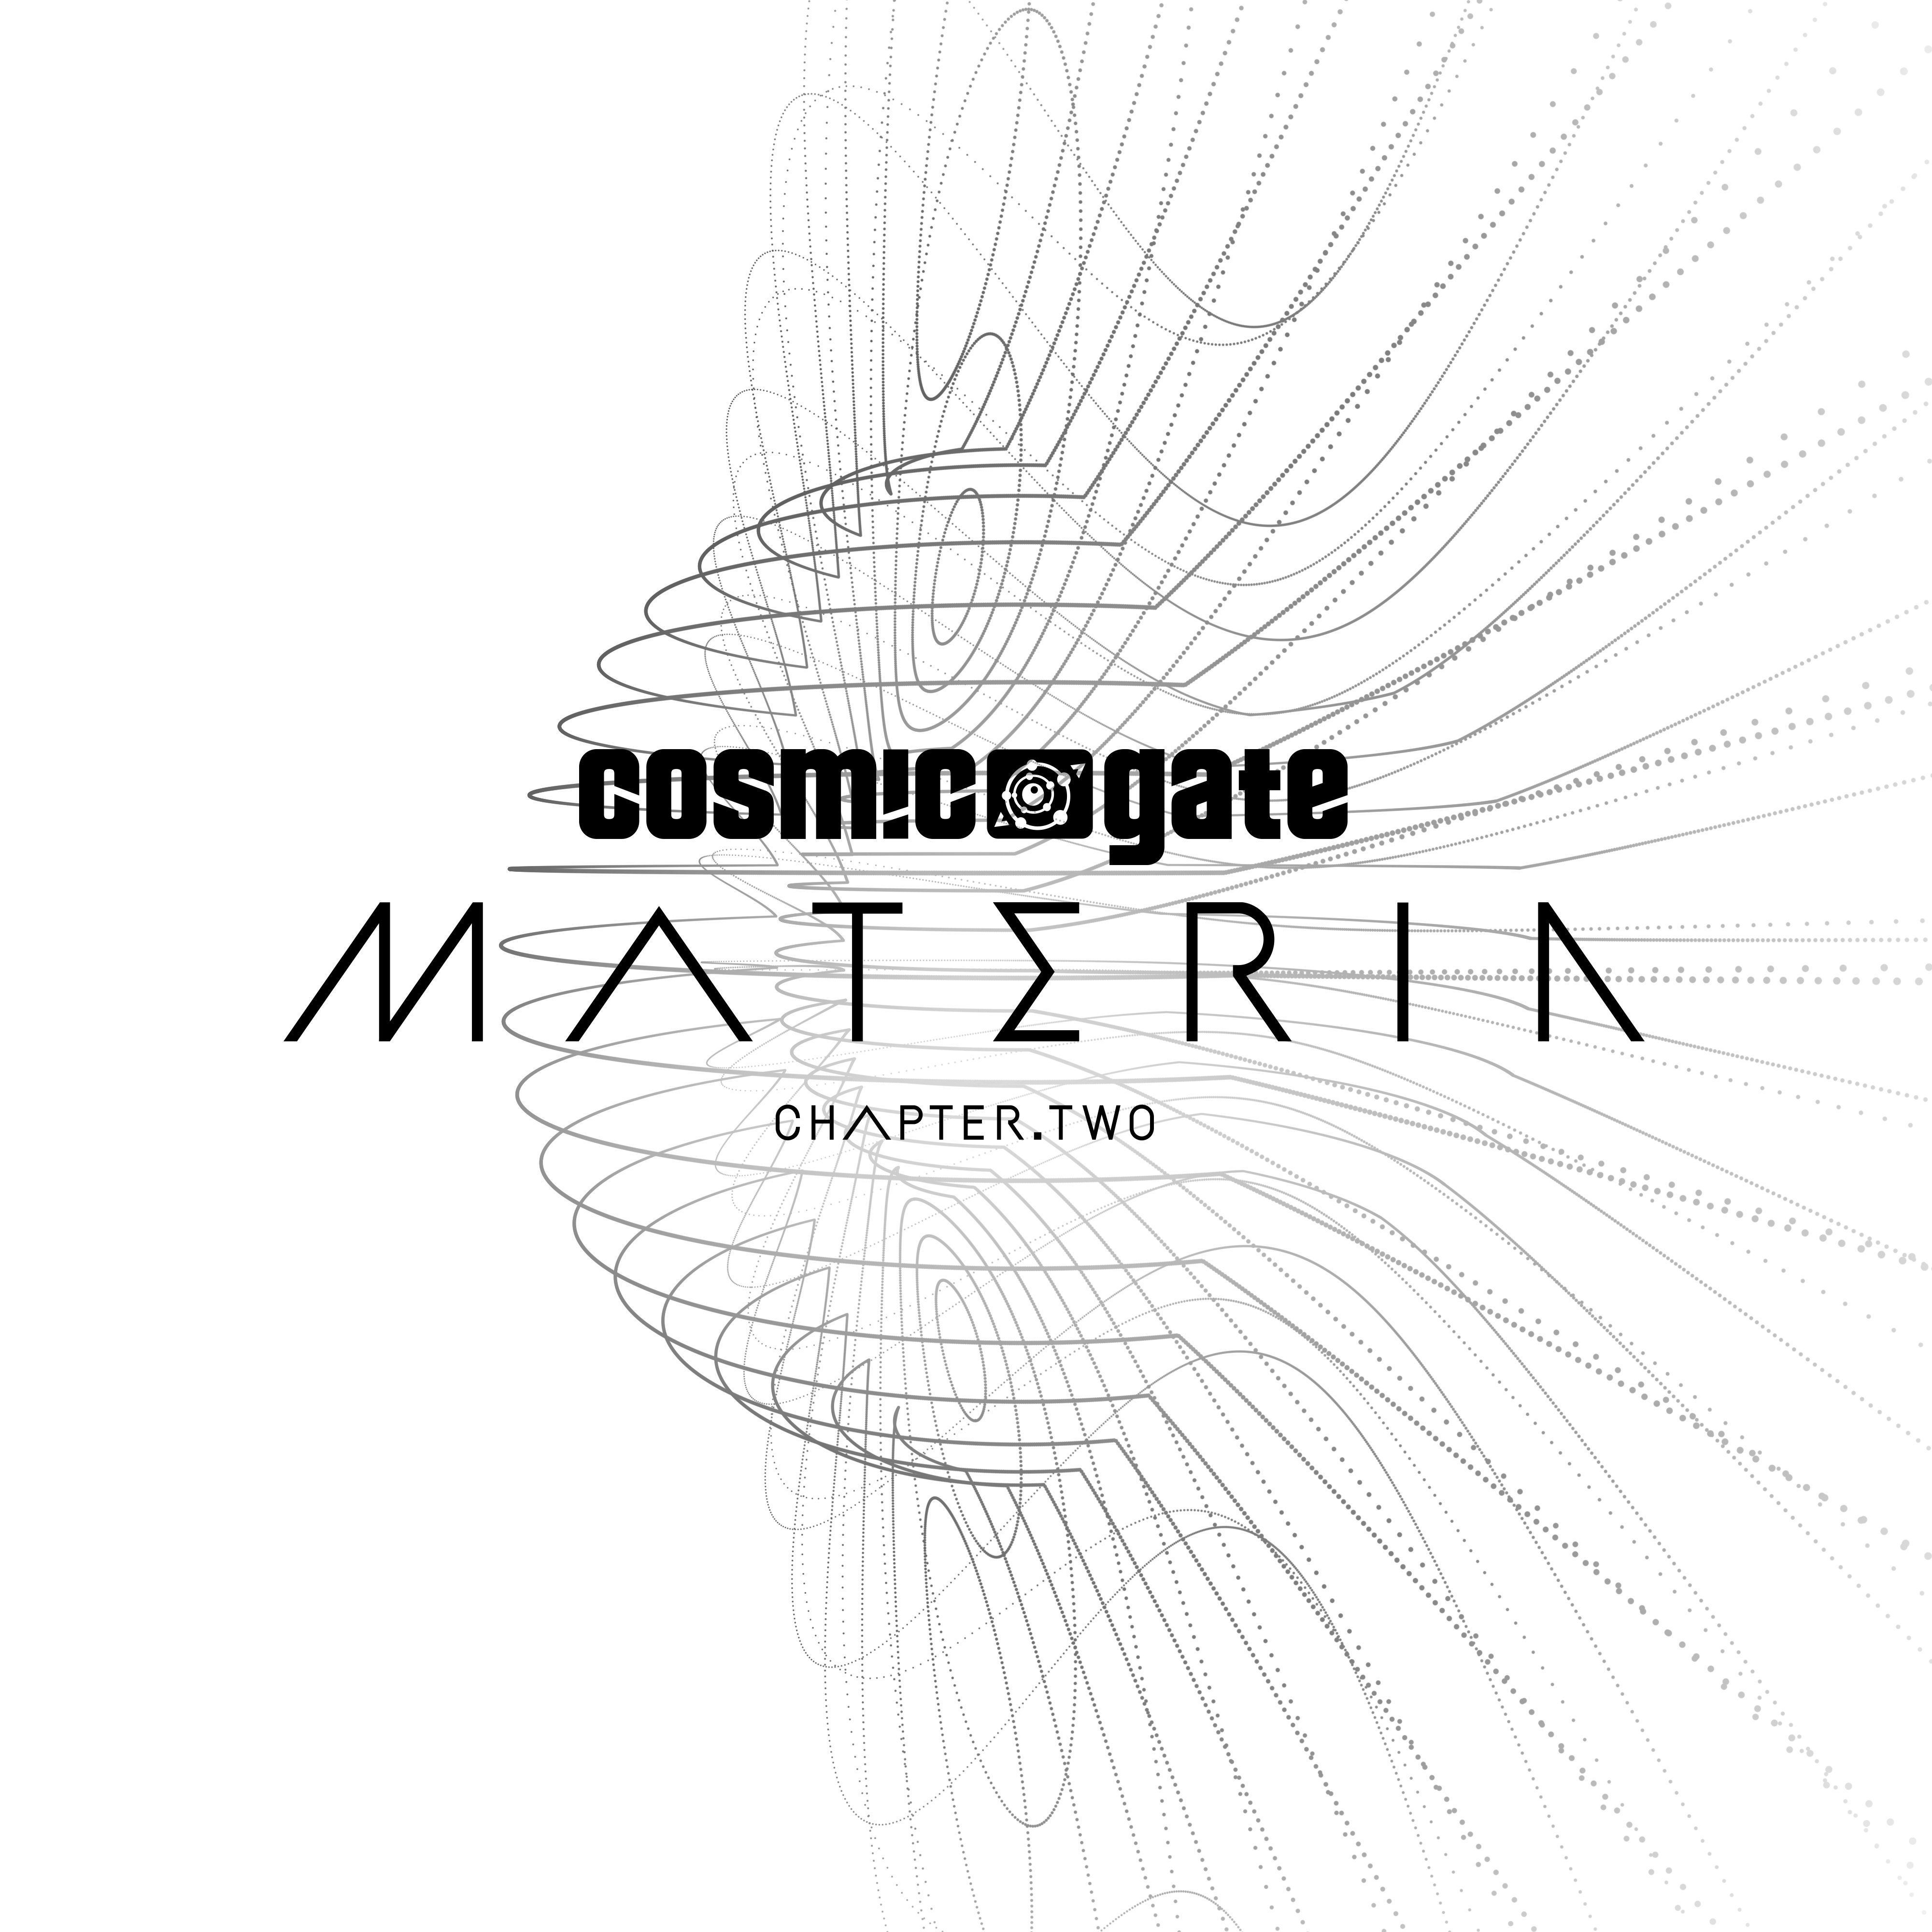 Cosmic Gate – Materia Chapter.Two